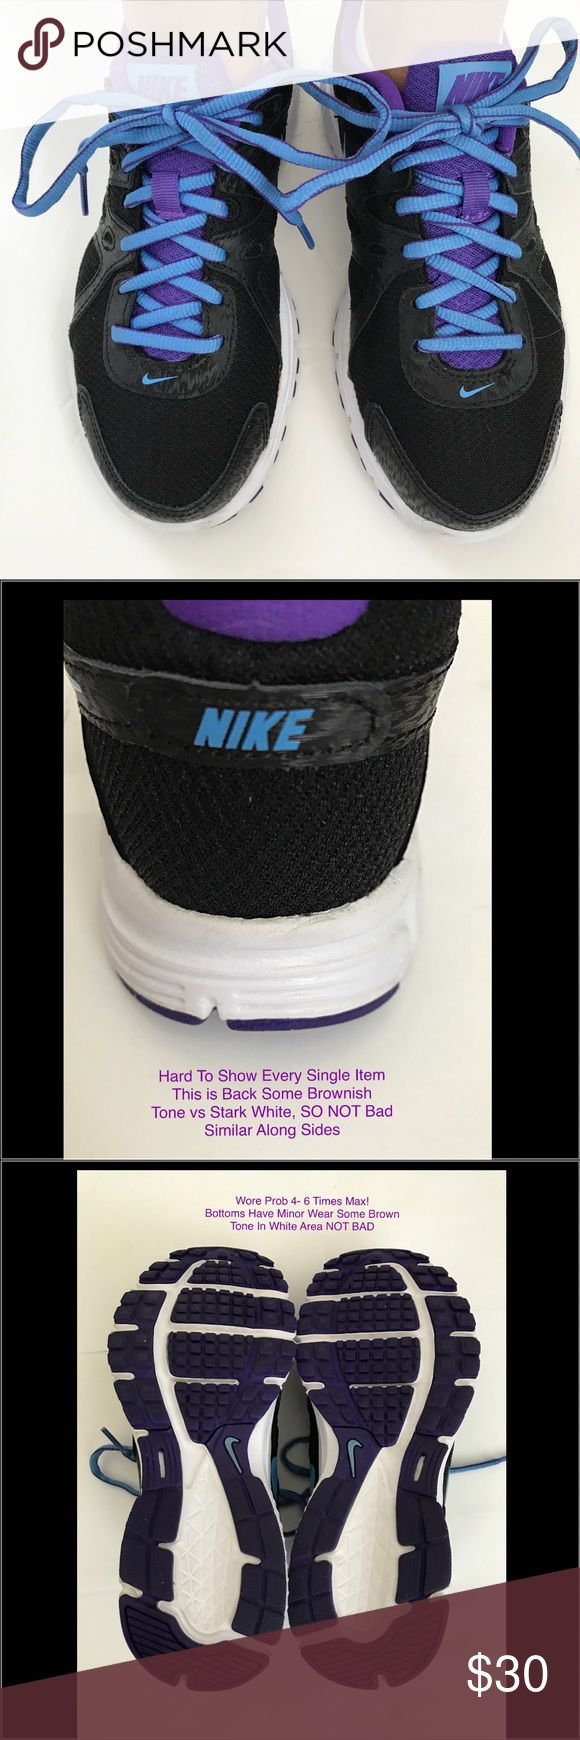 Great Condition Nike Revolution 2 Ladies 6.5 Shoes Pre-Owned - Nike Revolution Women's Running Shoes Great Condition! 🔹Please See Pictures To Show They Have Been Worn 🔹Wore 4-6 Times Max (didn't run) 😳   •Women's Size: 6.5 •Purple, Blue & Black  •Breathable mesh upper w/ synthetic overlays for structured support, SO COMFORTABLE  •Cushioned footbed, Leather / Synthetic  •Rubber outsole with waffle pattern for traction and durability •Deep flex grooves provide enhanced flexibility • Paid…